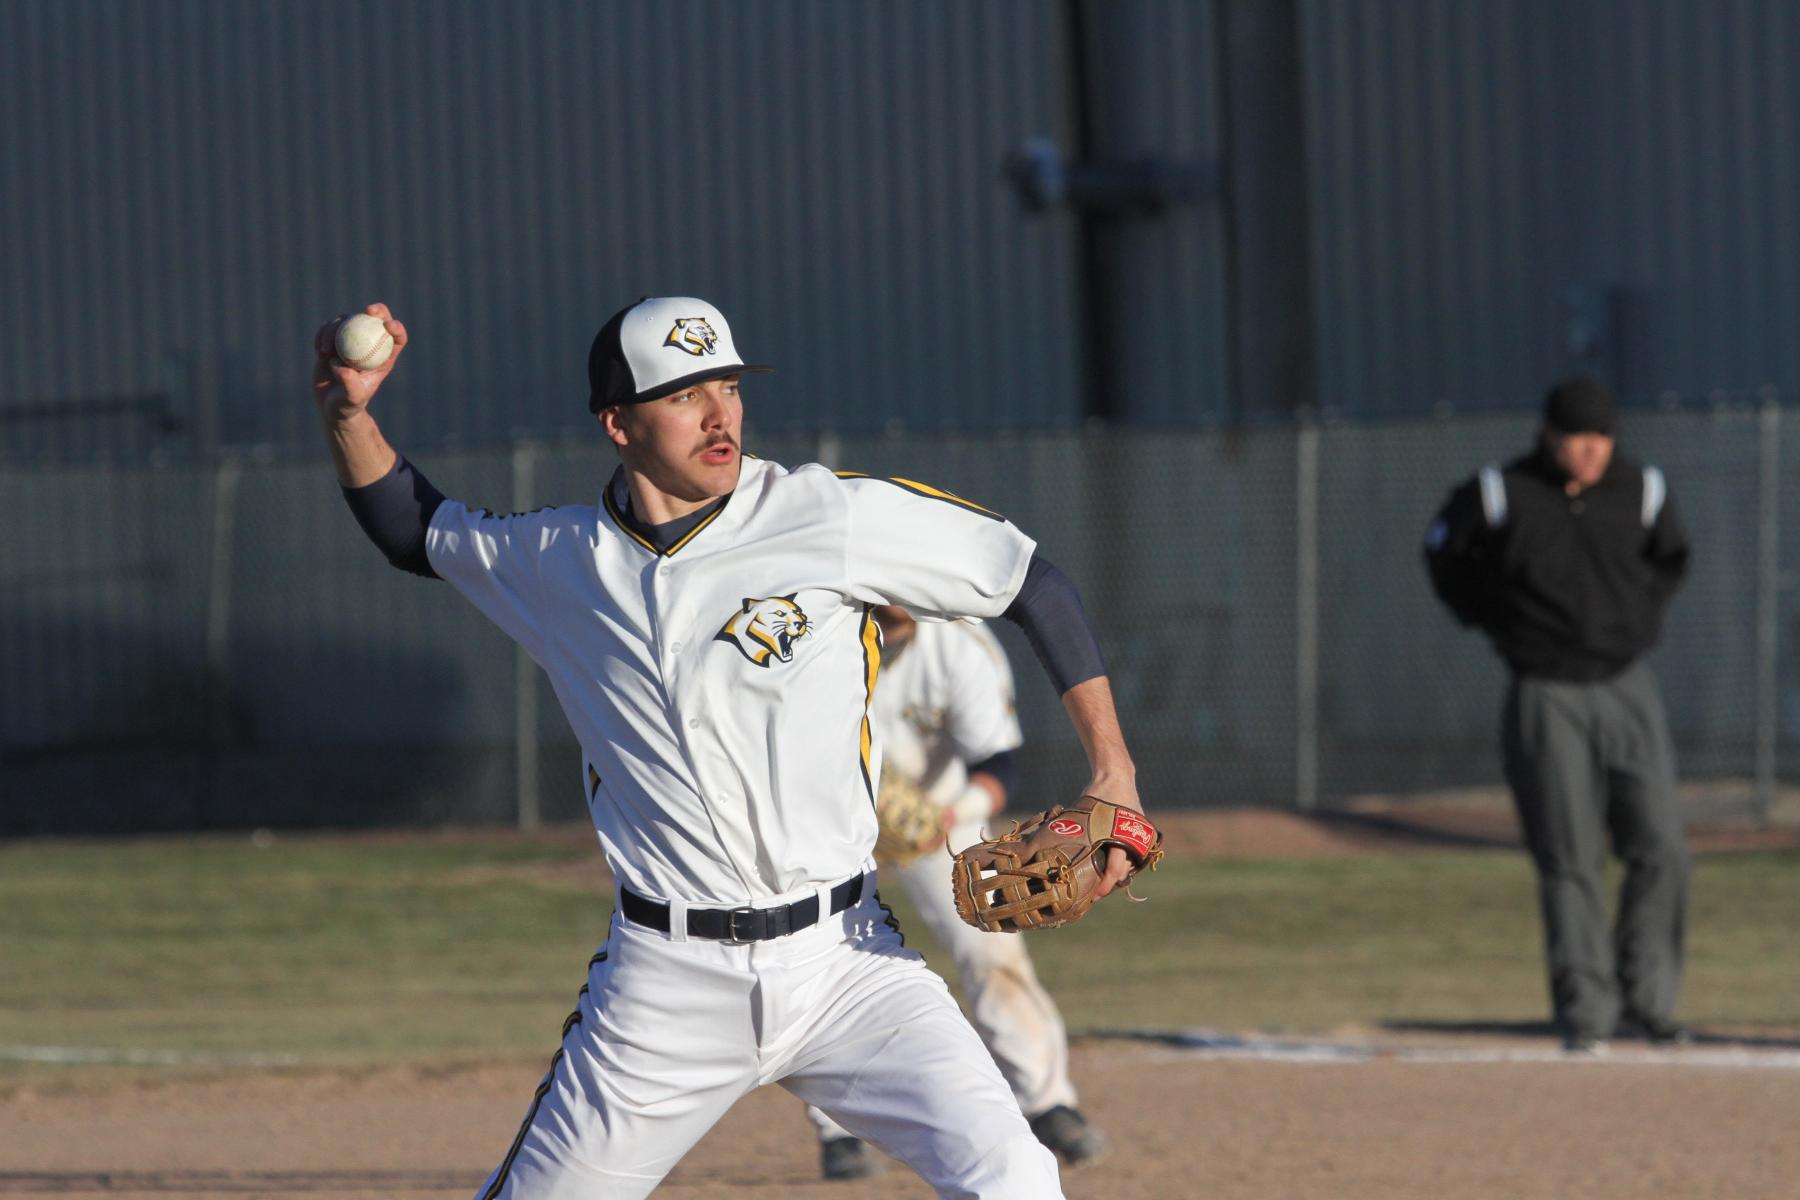 WNCC baseball picks up two wins over Miles at home